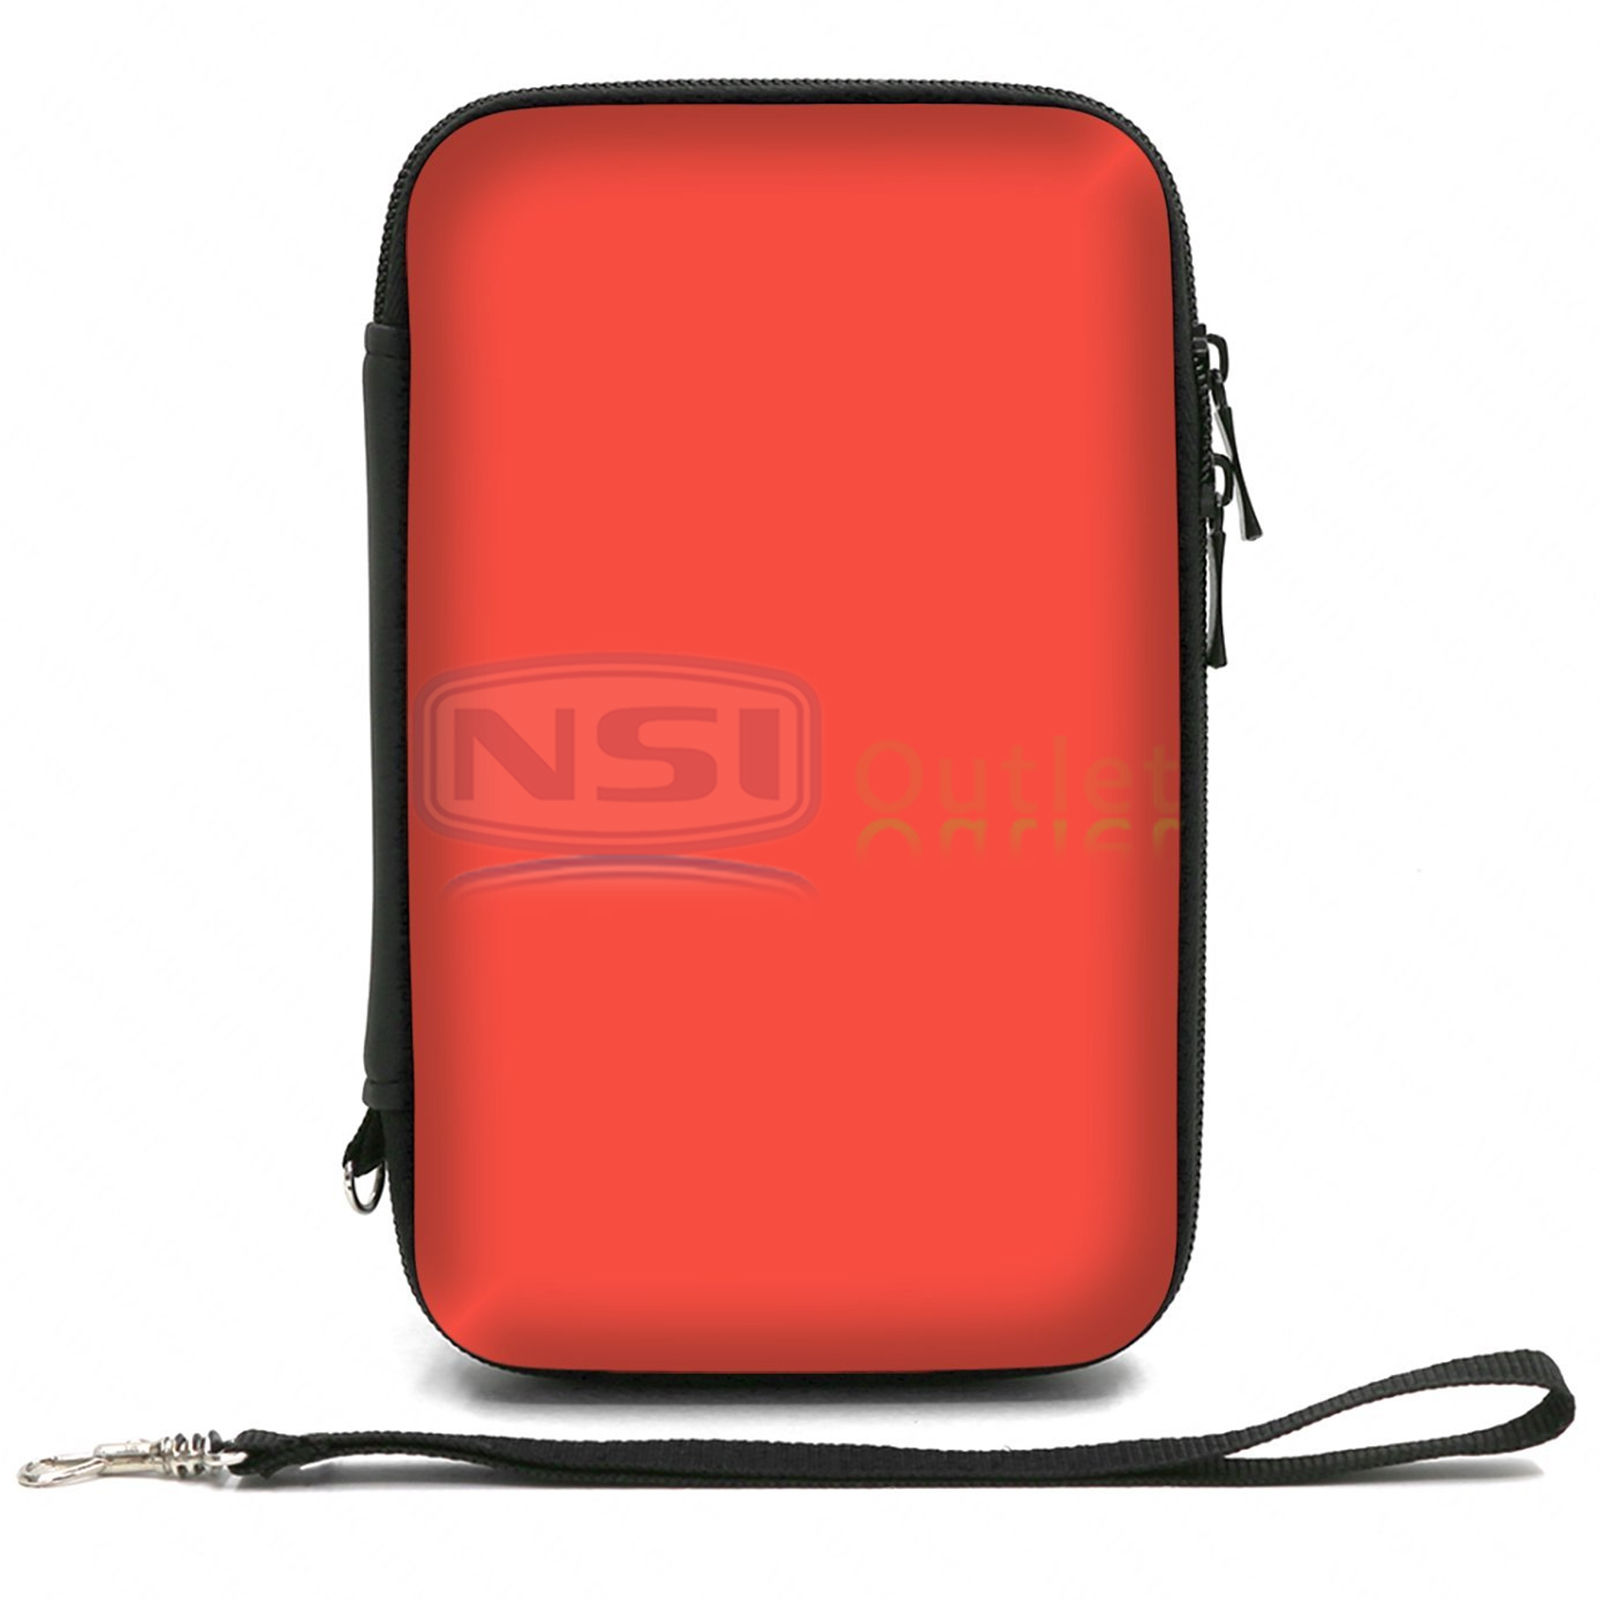 EVA-Hard-Protective-Carry-Case-Bag-Pouch-For-New-Nintendo-3DS-XL-3DS-LL-3DS thumbnail 15